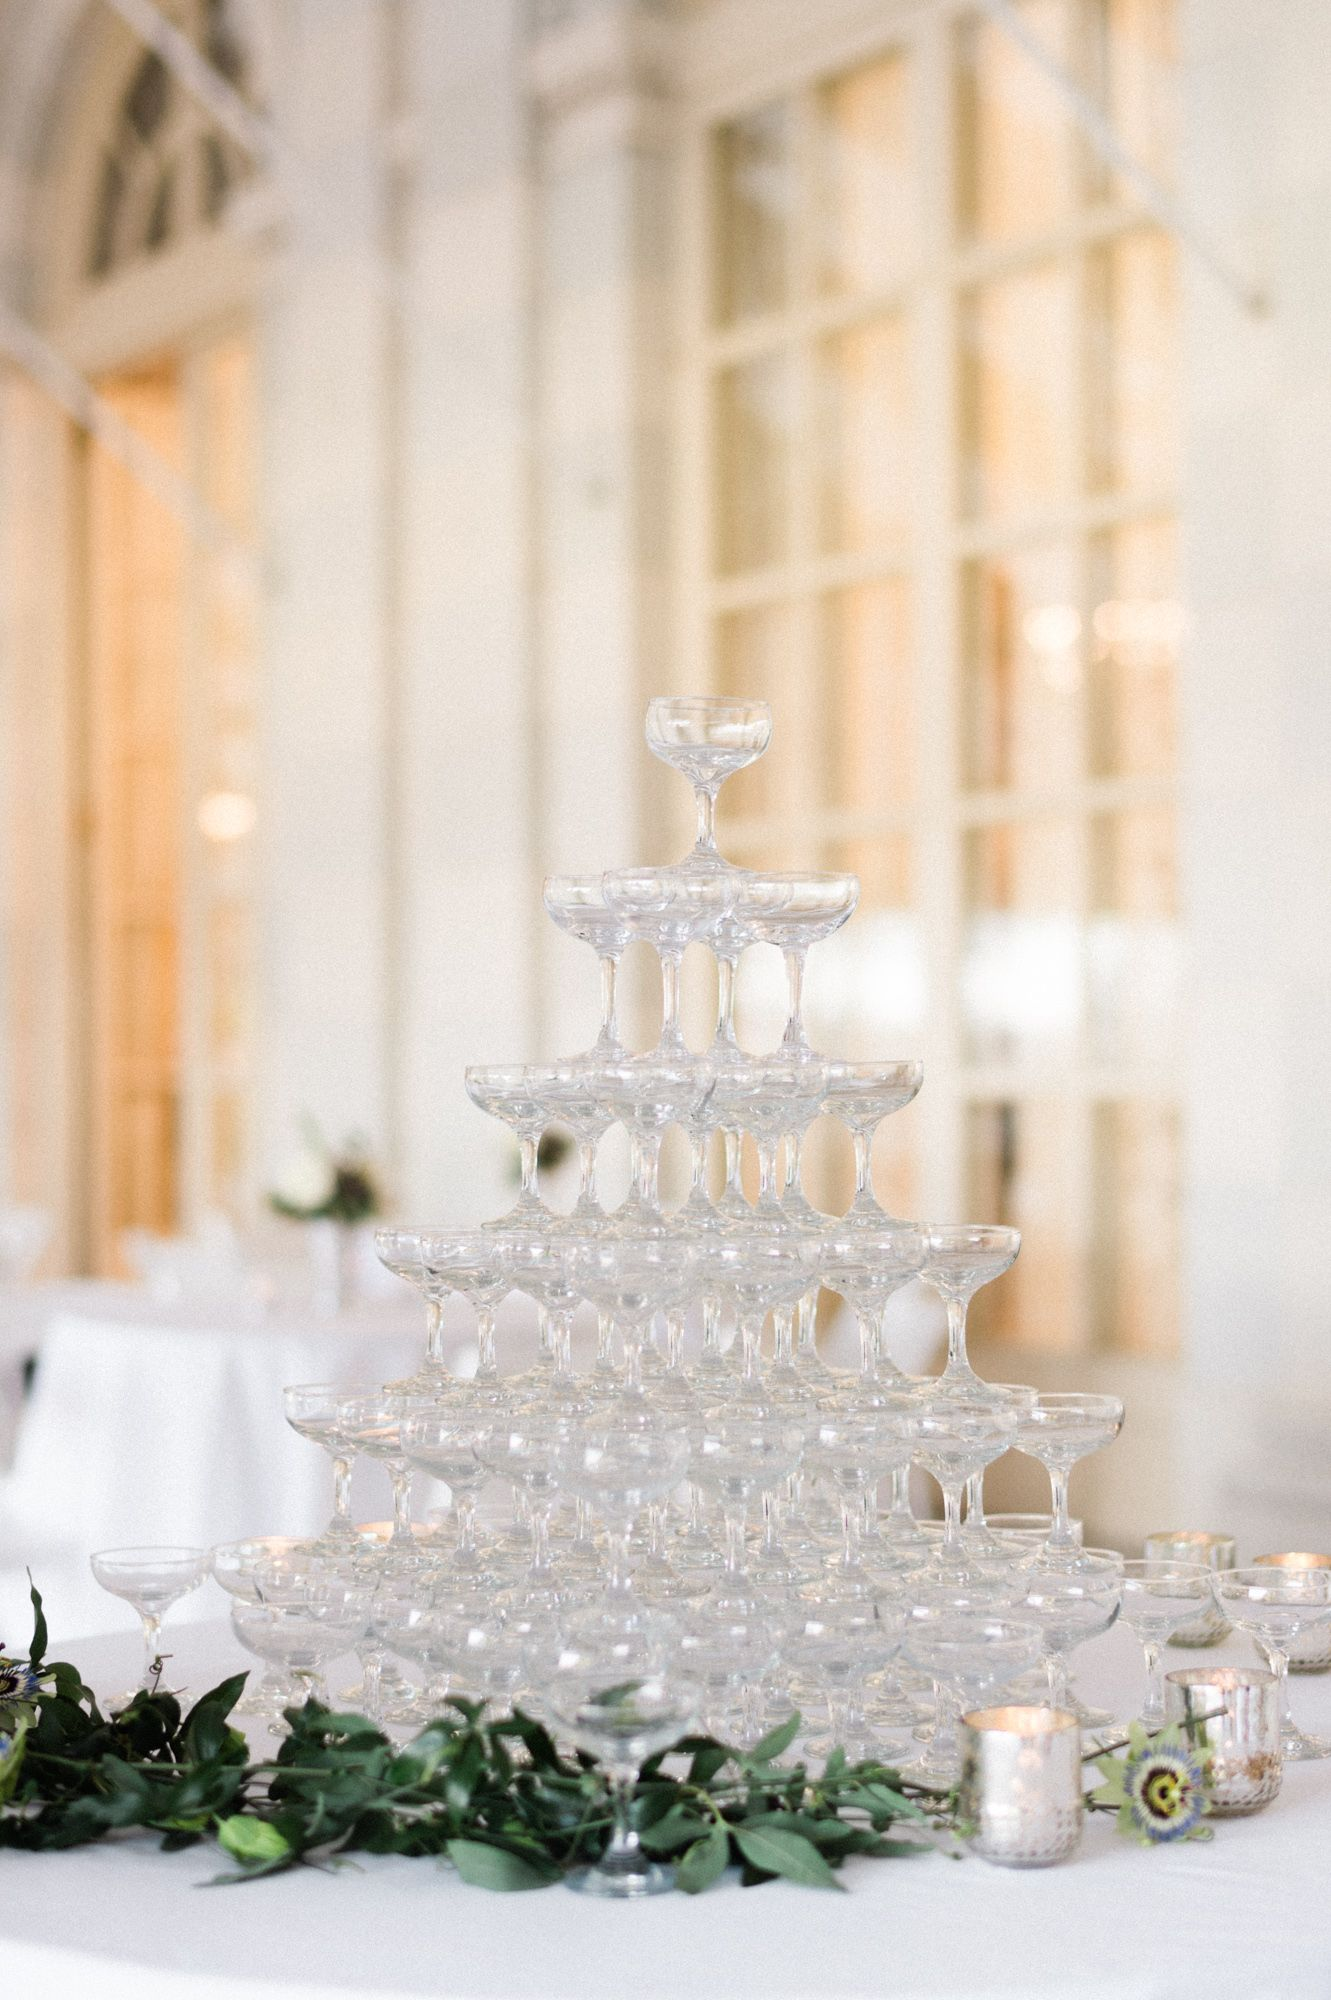 25++ Rosecliff mansion wedding reviews ideas